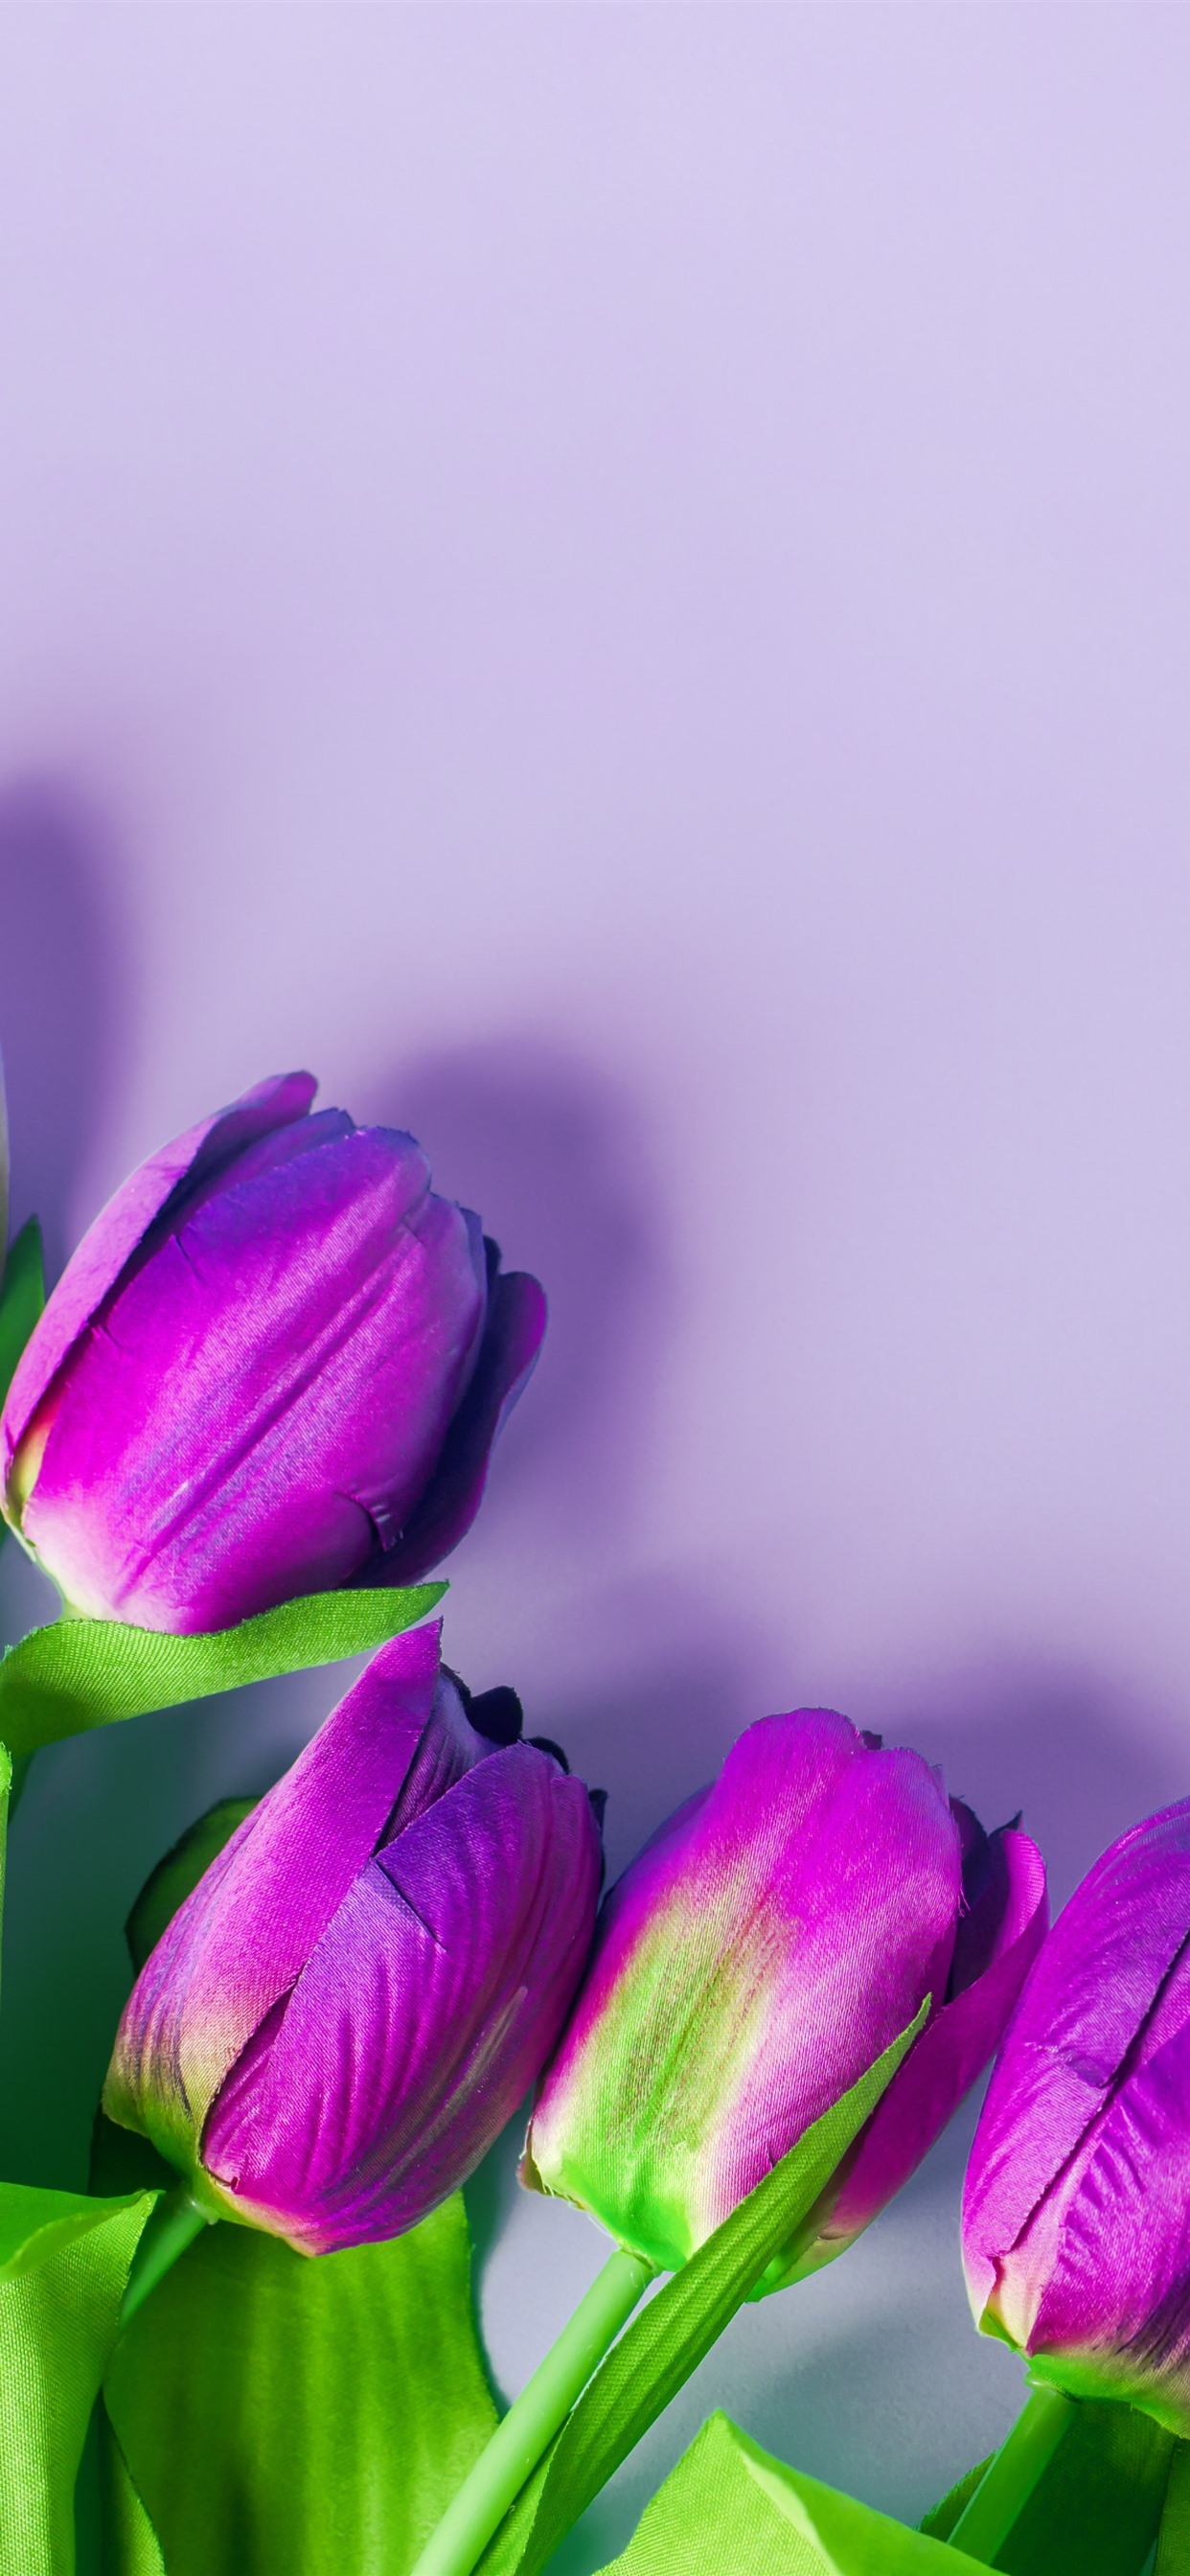 Purple Tulips Flowers Light Pink Background 1242x2688 Iphone 11 Pro Xs Max Wallpaper Background Picture Image